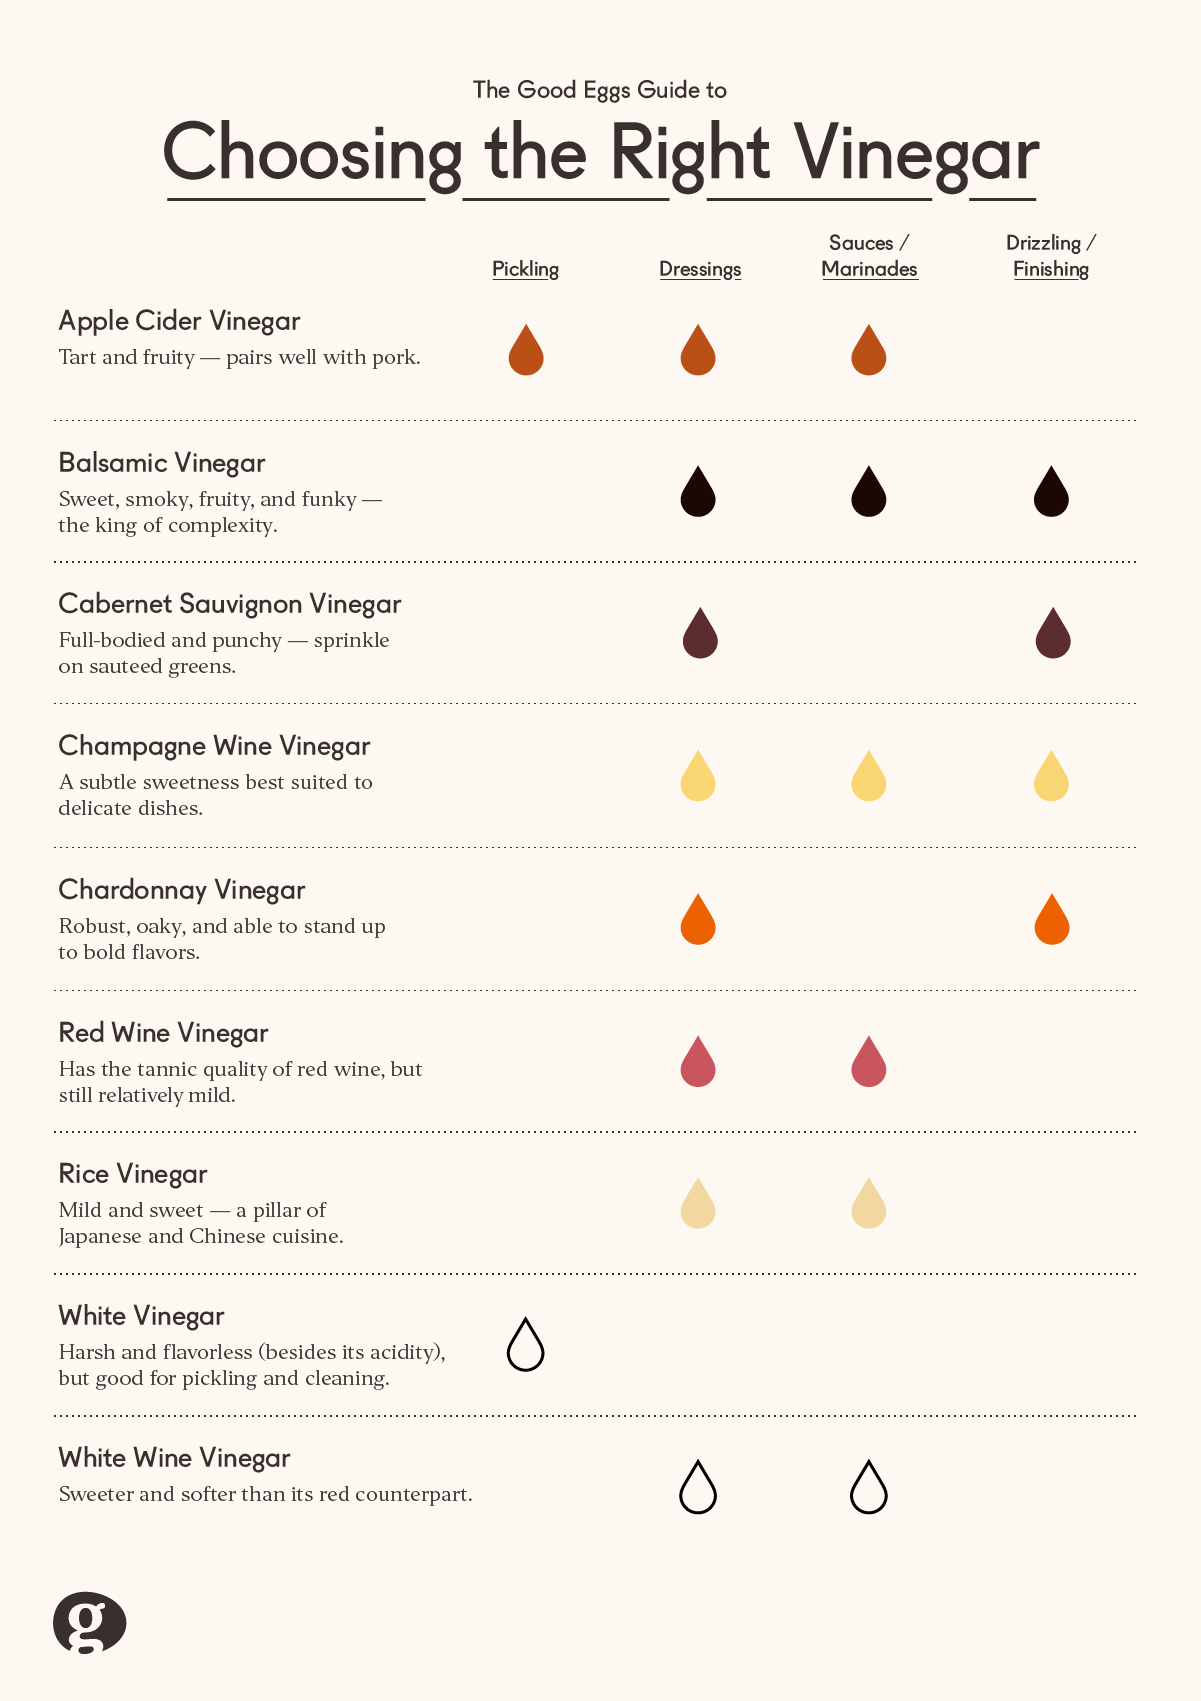 using-vinegar-to-brighten-and-balance-dishes-infographic.png